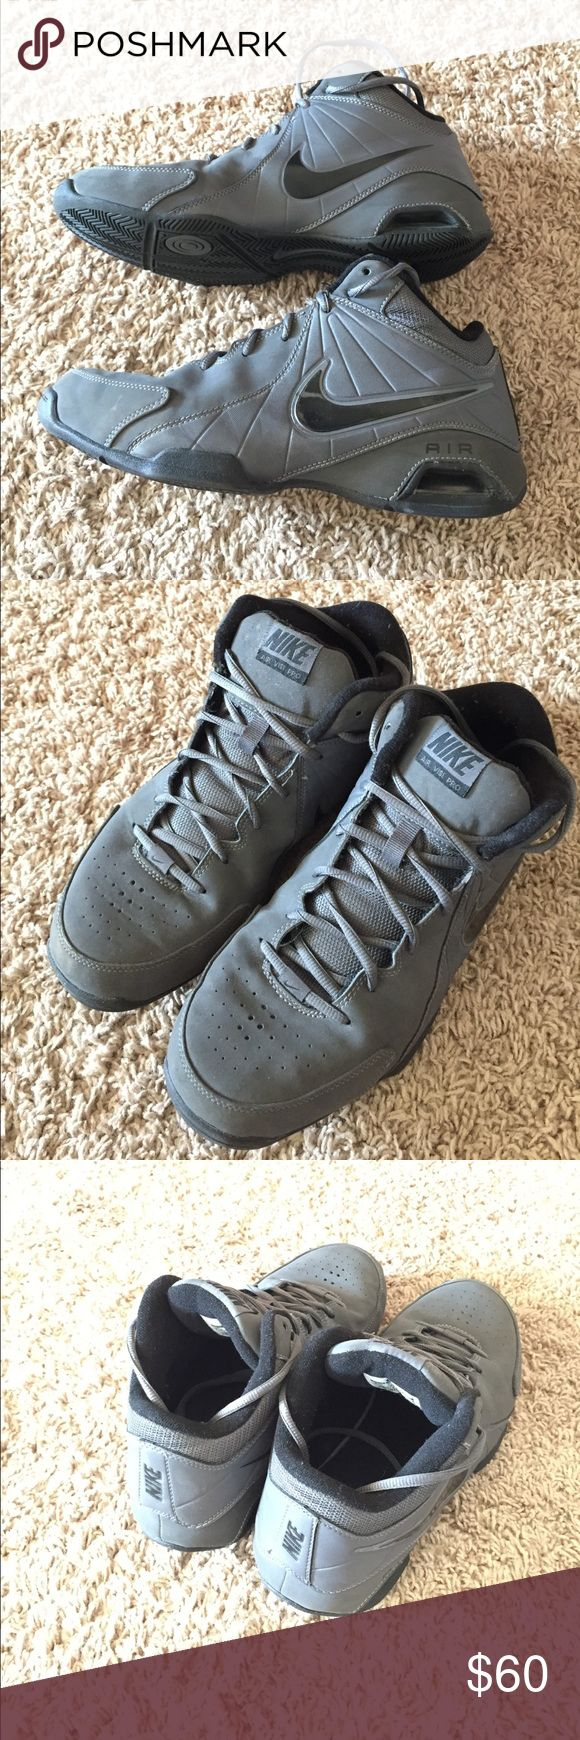 Nike basketball shoes Nike Air Visi Pro basketball shoes. These shoes are lightly worn, in excellent condition. As you can see no wear on the soles, and minimal wear on the tips. I'm parting with these because I don't play anymore. Nike Shoes Athletic Shoes